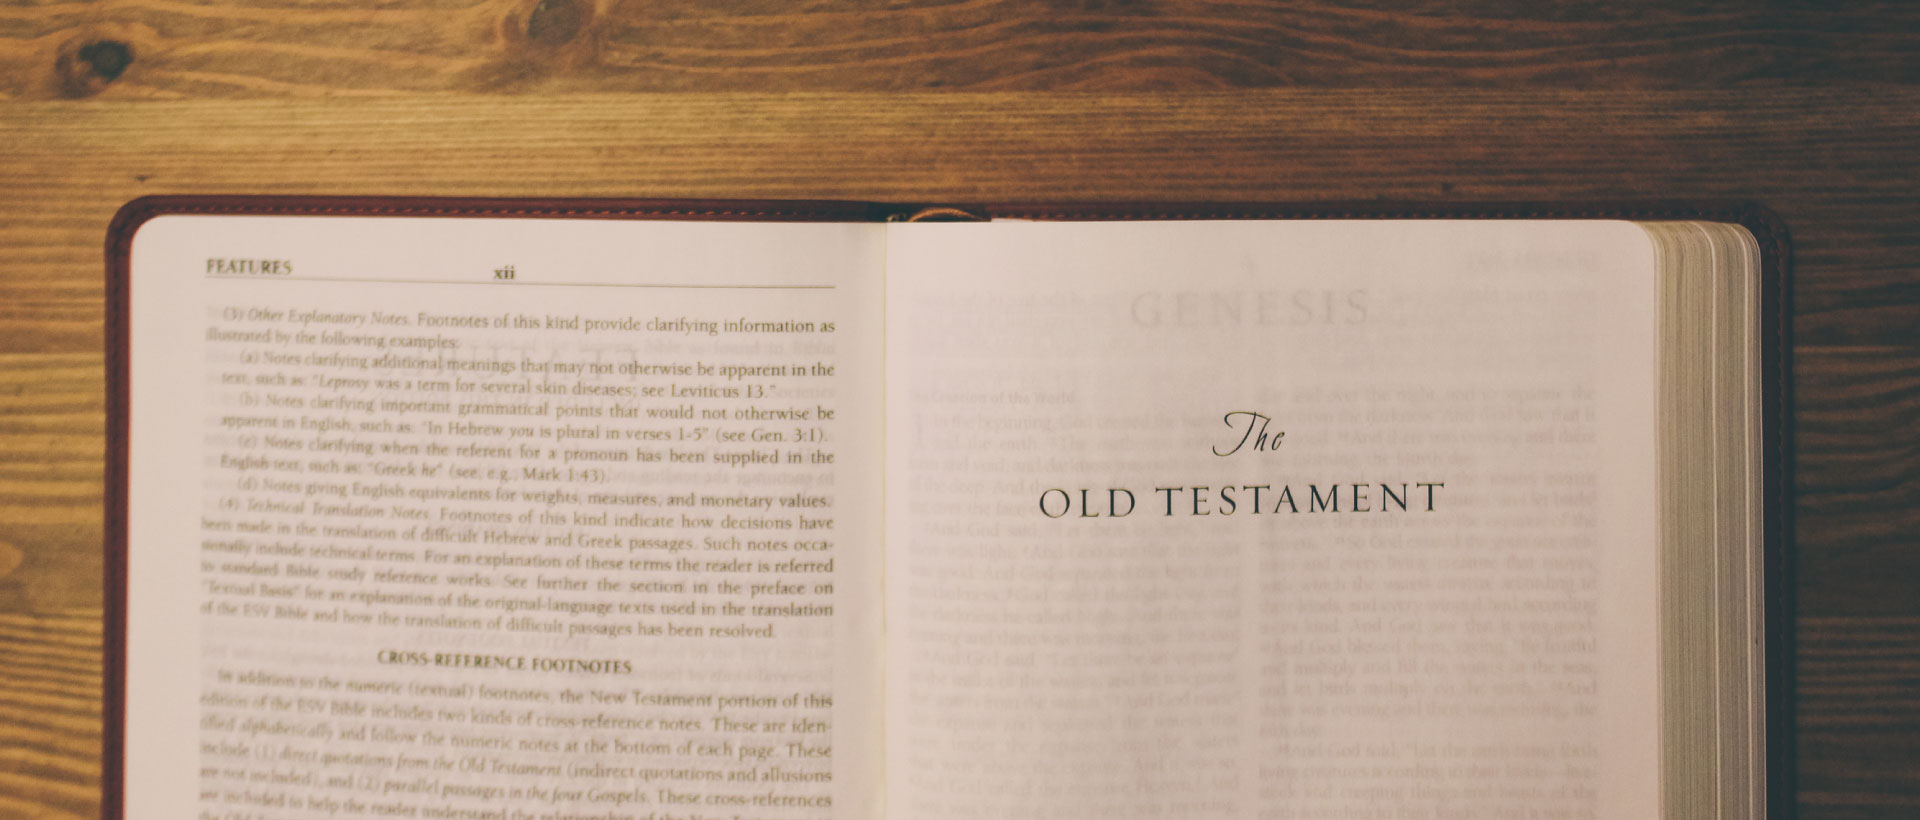 10 Reasons The Old Testament Is Important For Christians